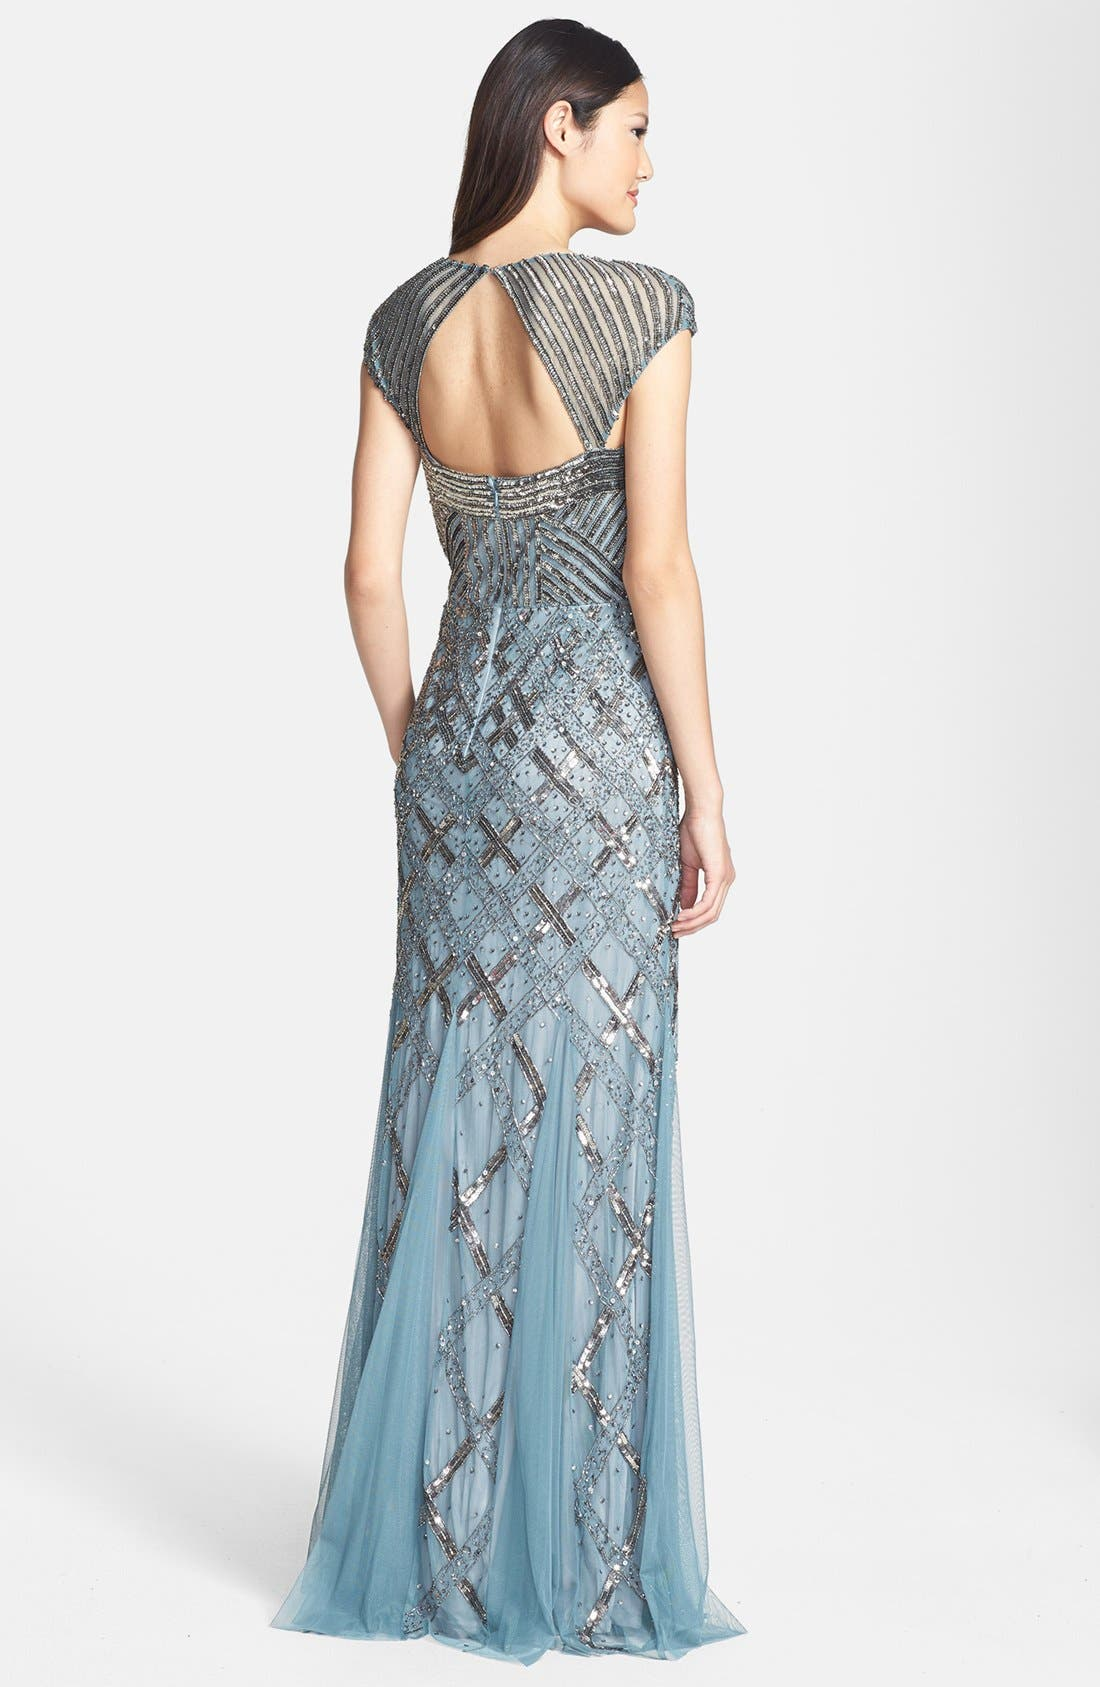 ADRIANNA PAPELL,                             Embellished Mesh Mermaid Gown,                             Alternate thumbnail 3, color,                             030